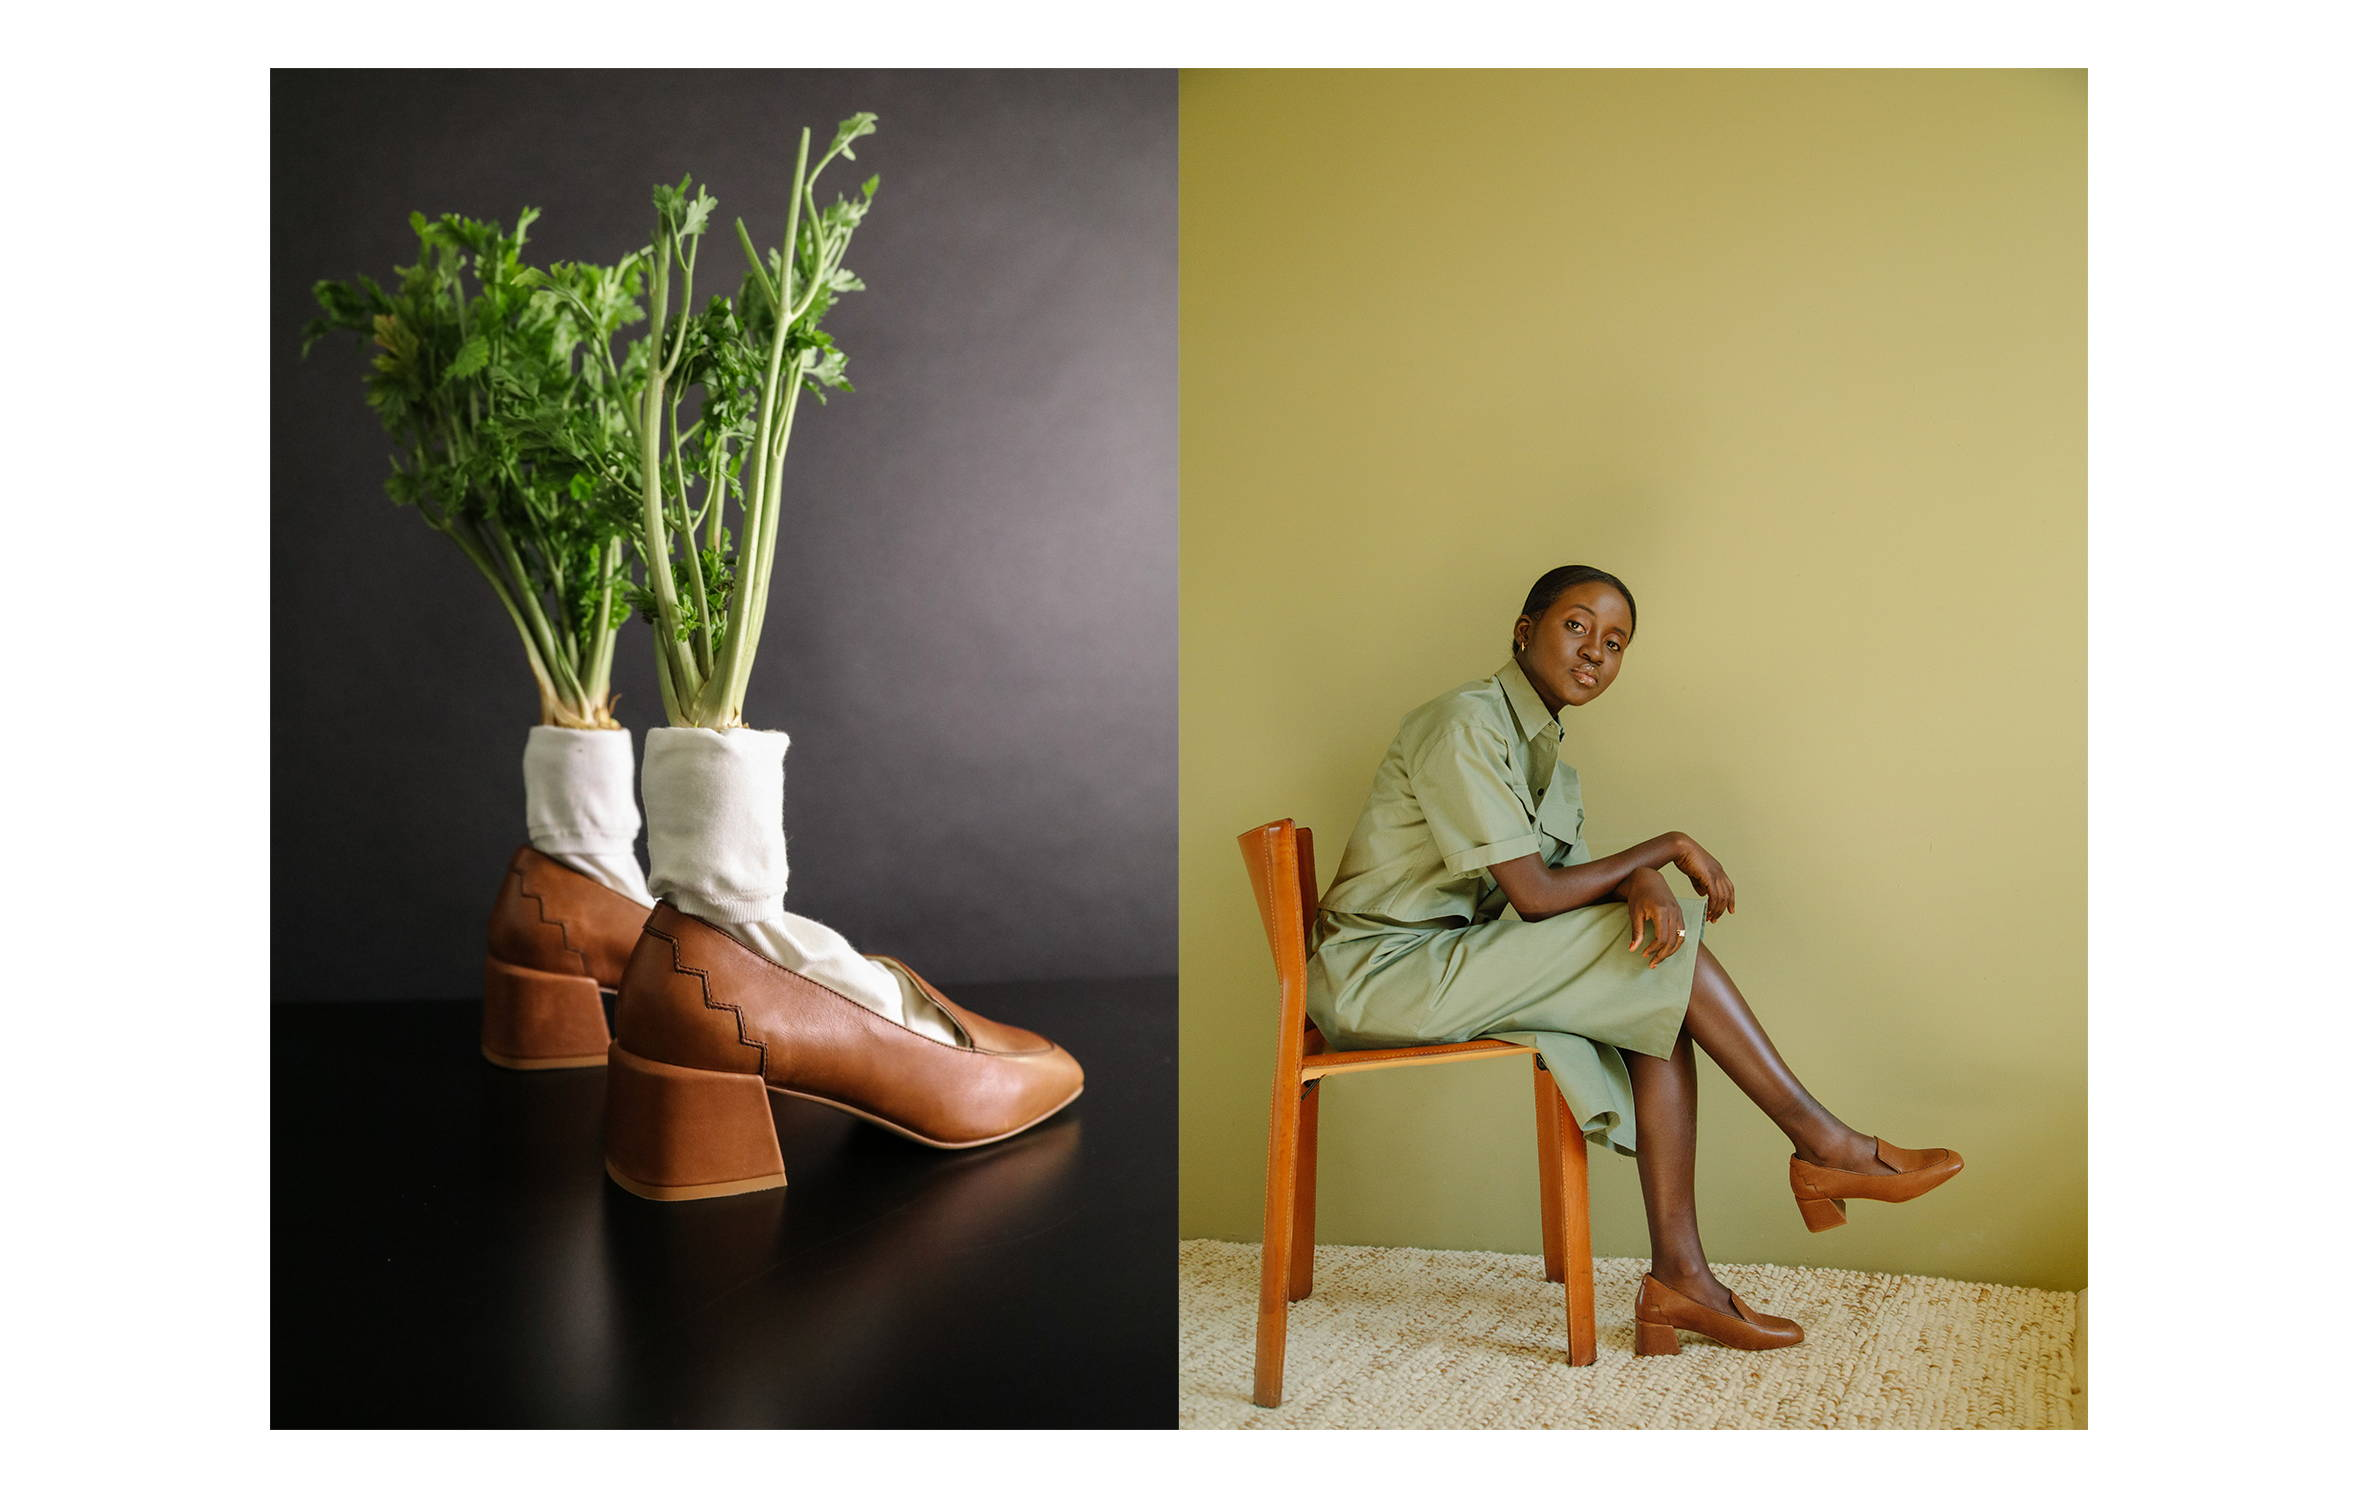 Marlene loafer in cognac vegetable tanned leather styled with socks and parsnips next to a model seated sideways in a chair wearing olive green and the sustainable Marlene mid-heel loafer